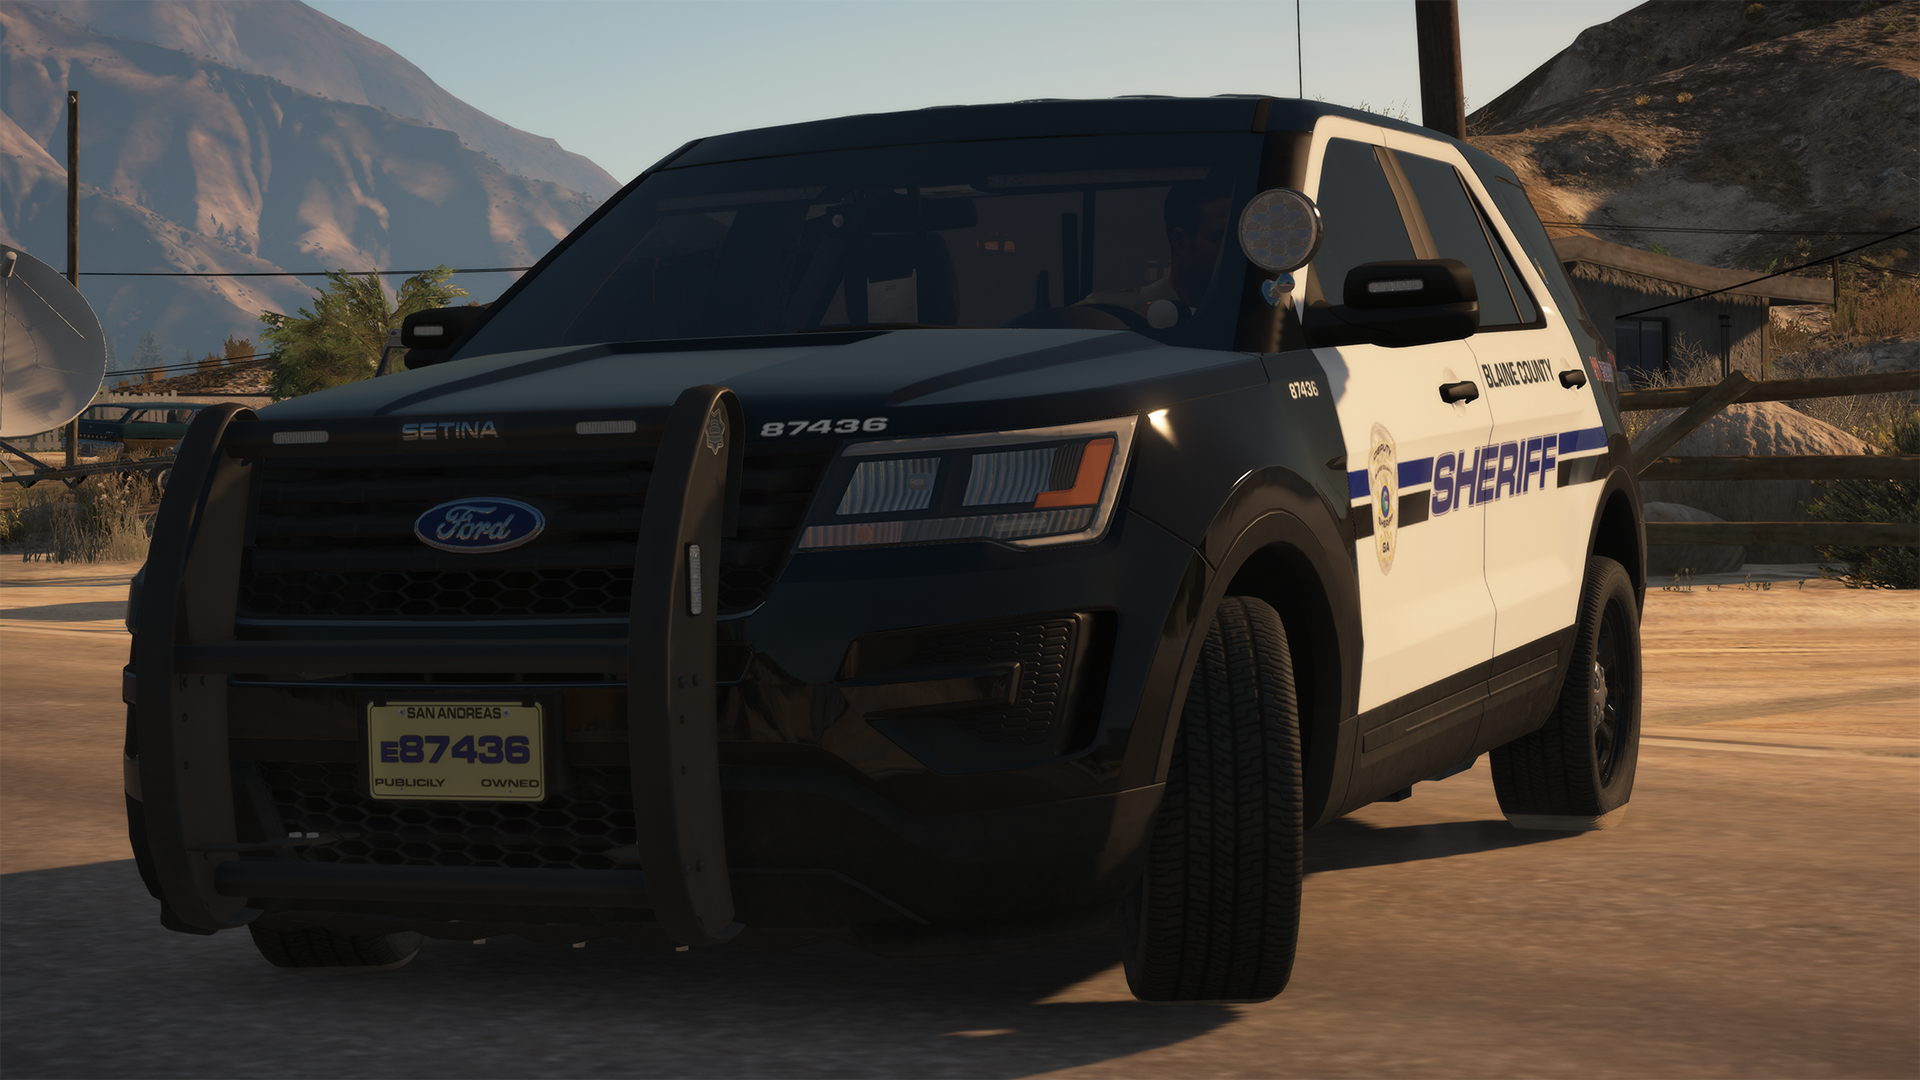 Grand_Theft_Auto_V_7_6_2020_1_03_45_AM.png.22caa1e4ca3b8cc70f5add75d898c7bb.png